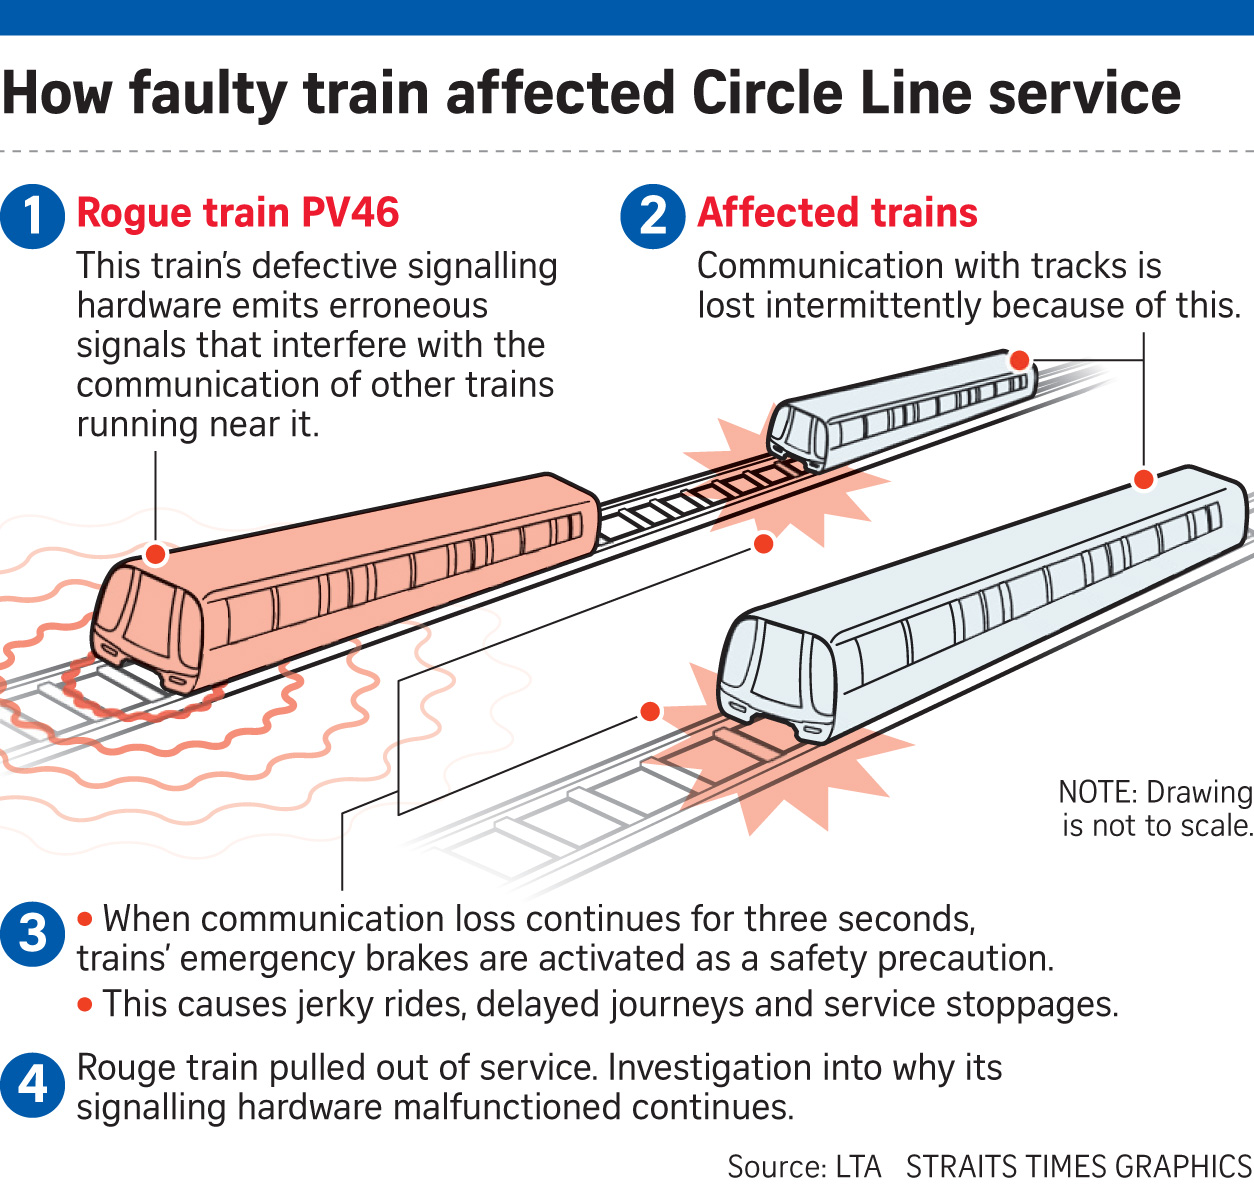 Under The Angsana Tree: MRT disruptions caused by signalling faults